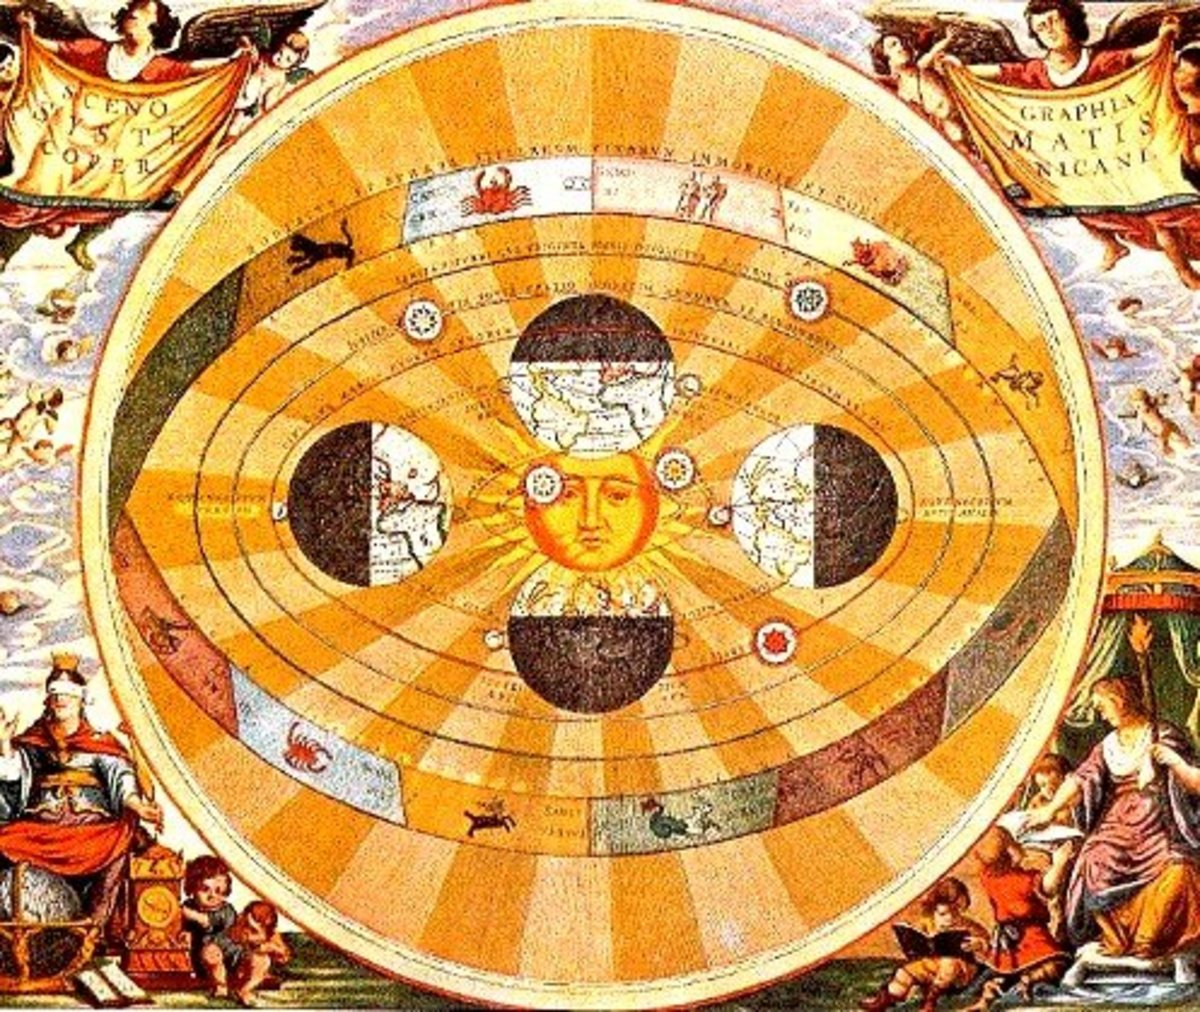 An early heliocentric model of our galaxy